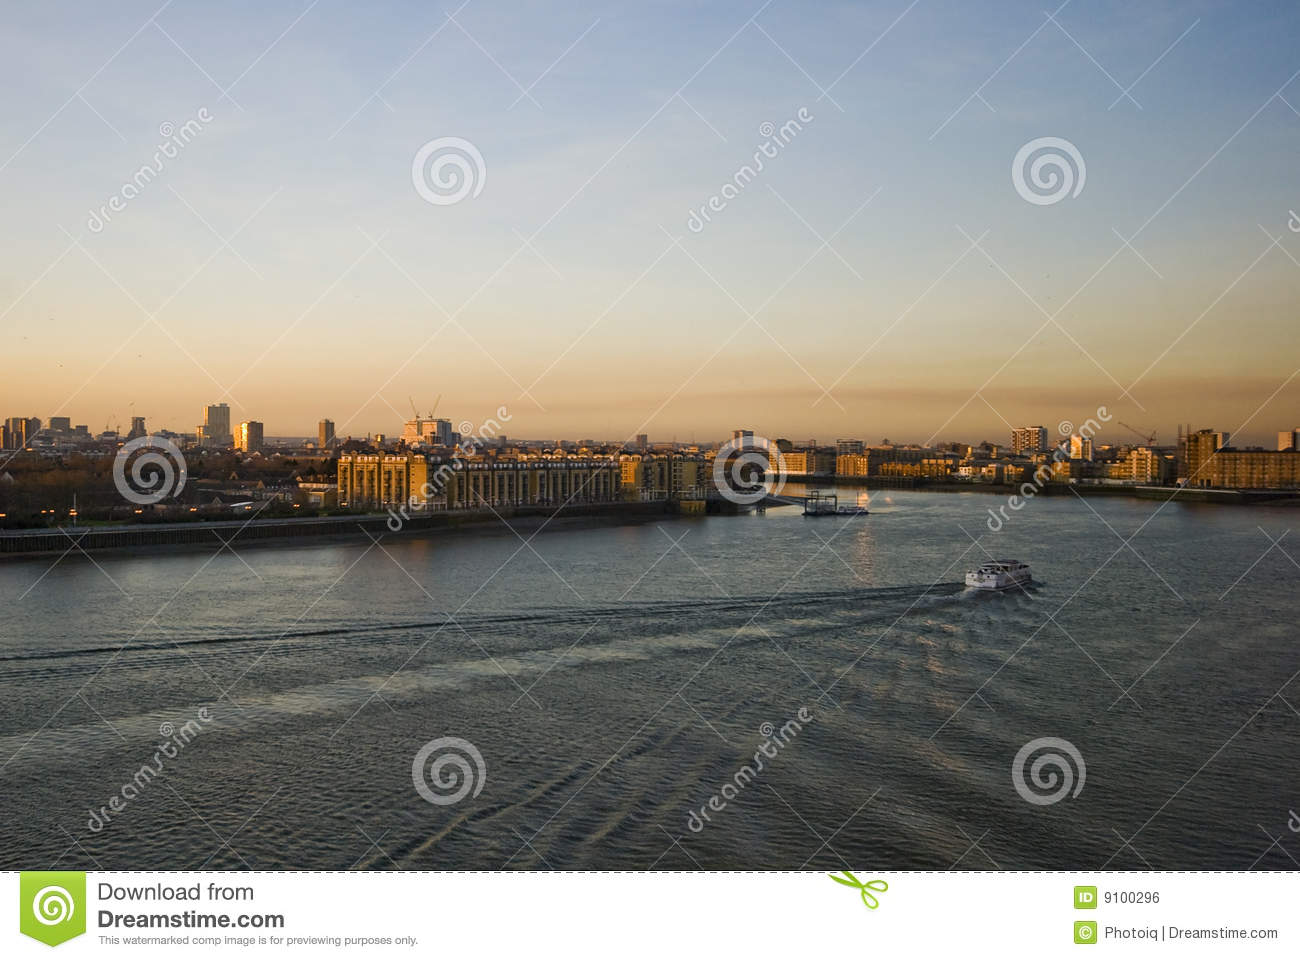 Sunset Over River Thames Royalty Free Stock Image - Image